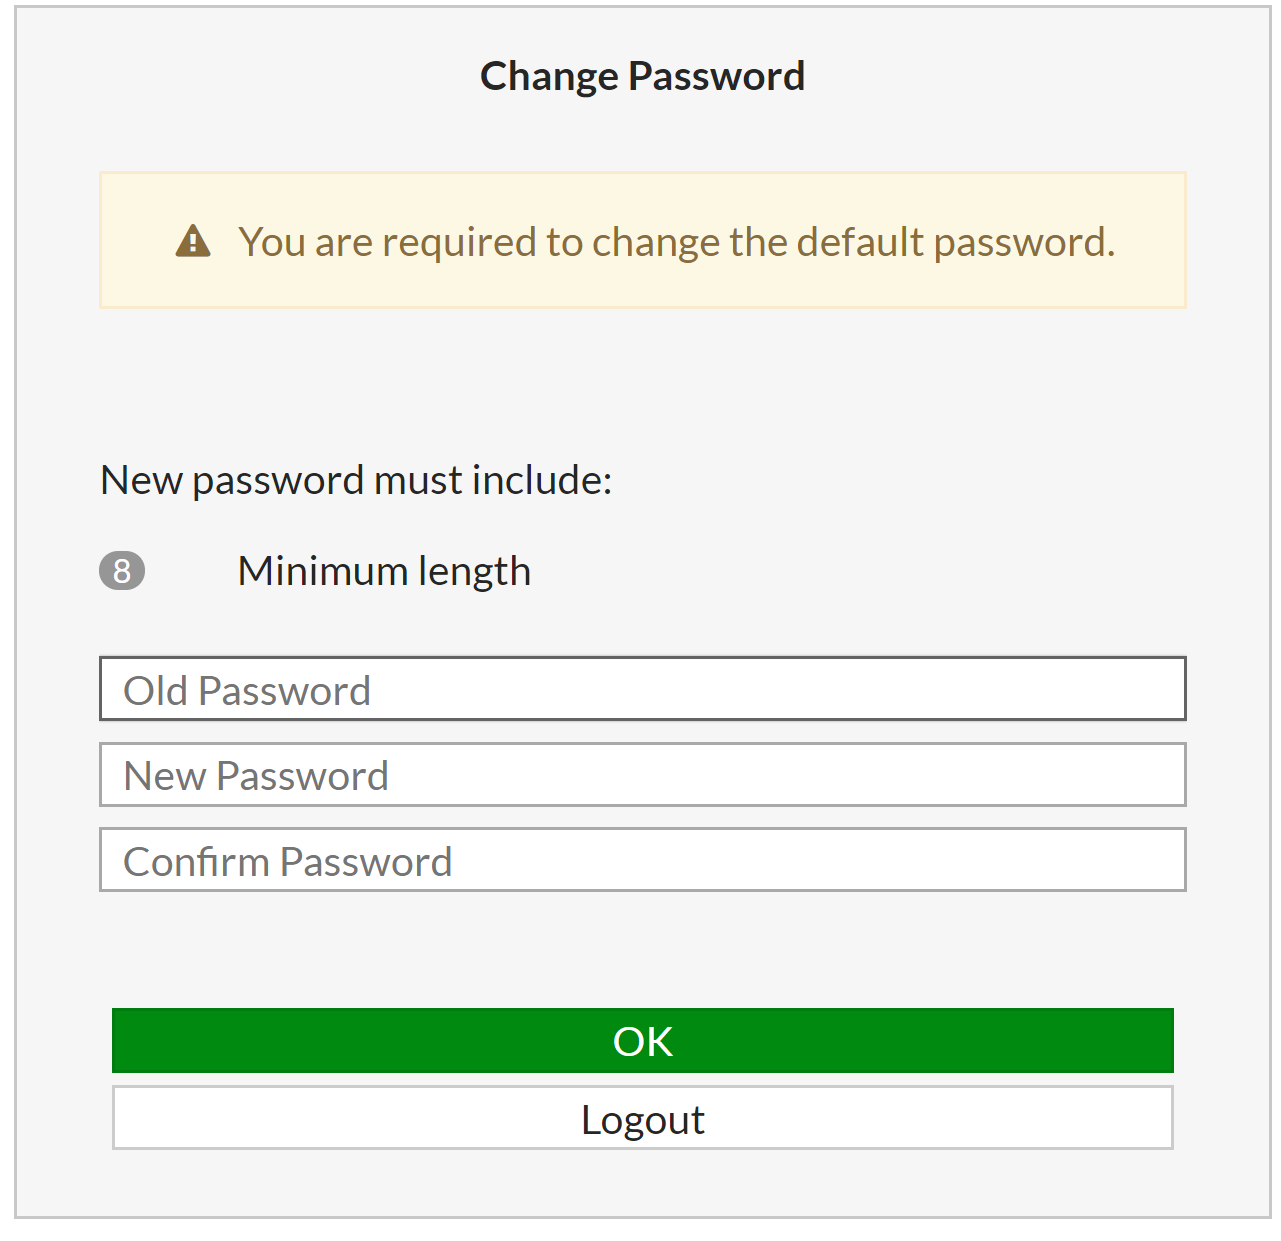 FortiGate change password prompt